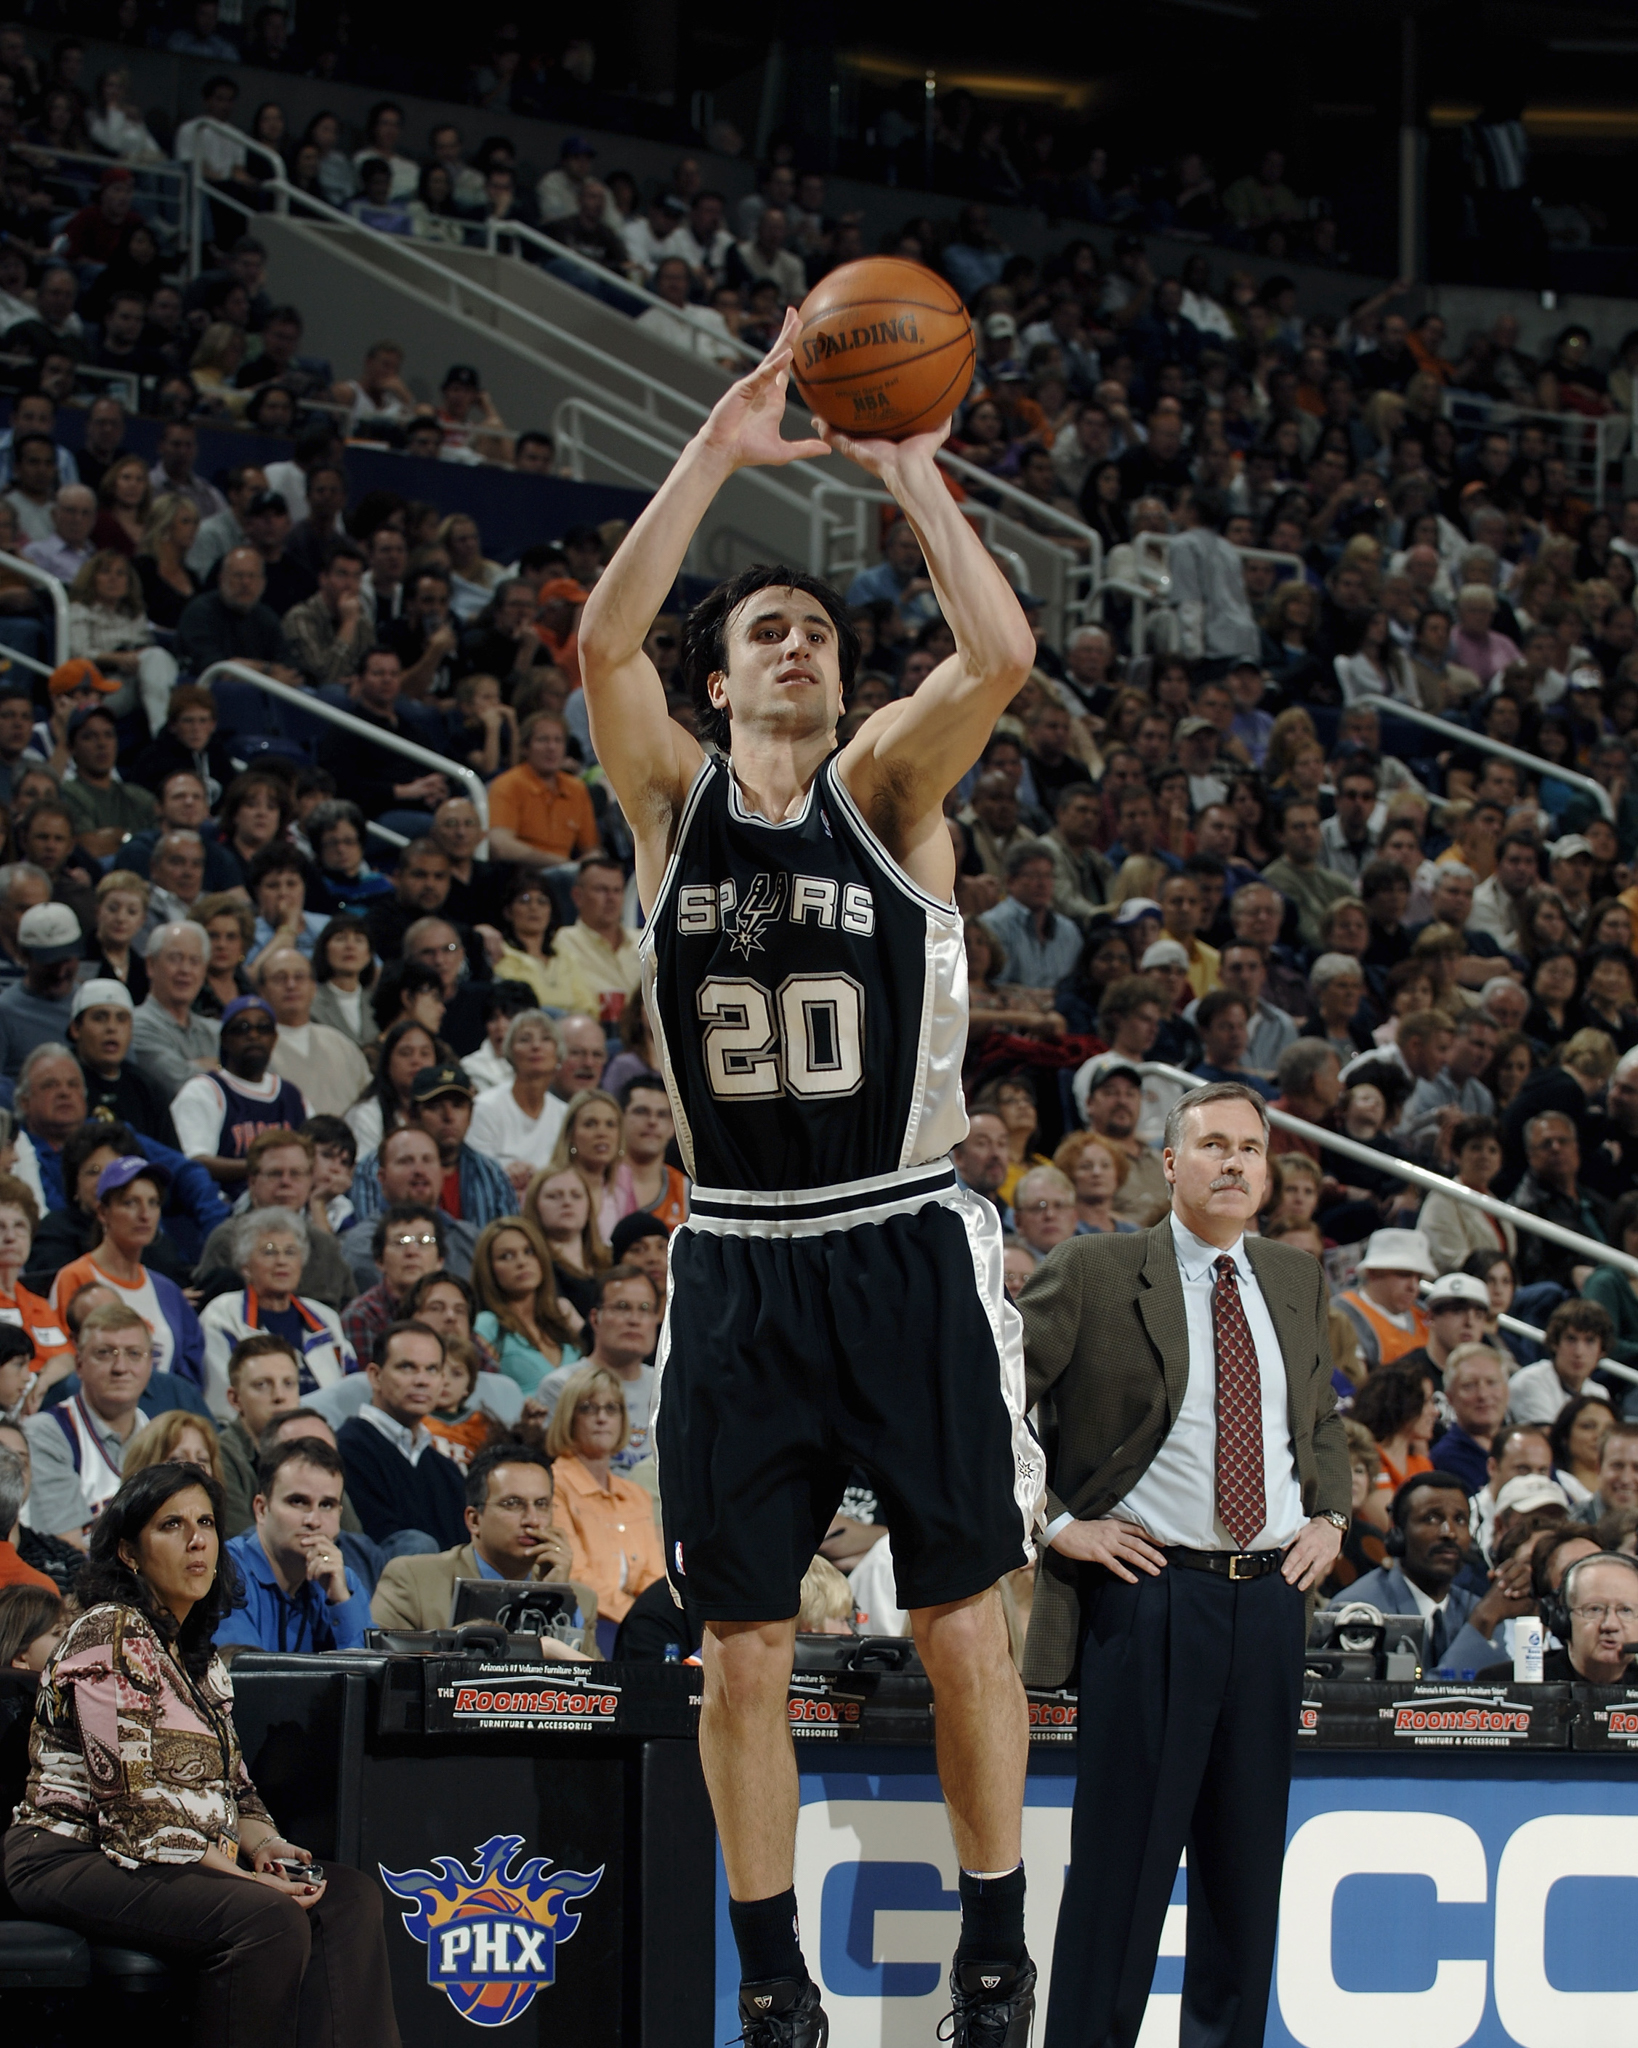 OTD in 2005, @manuginobili dropped a career-high 48 PTS in a victory vs. Phoenix 🔥  @FrostBank | #GoSpursGo https://t.co/777sOw24Mw